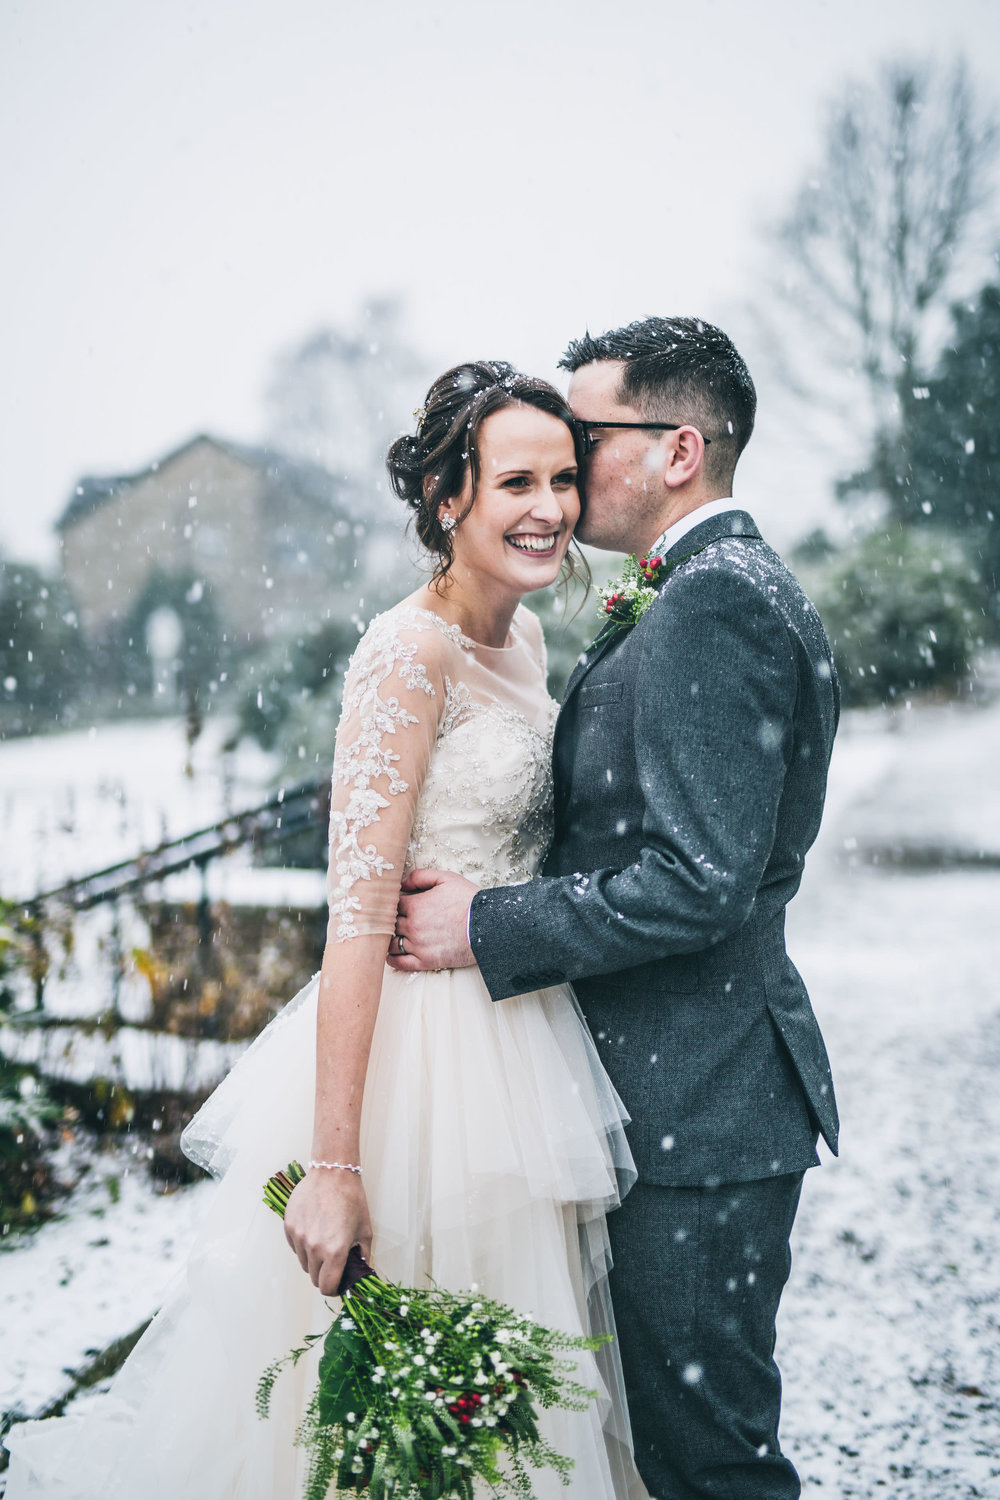 The bride laughing with the groom. Winter wedding in Lancashire.